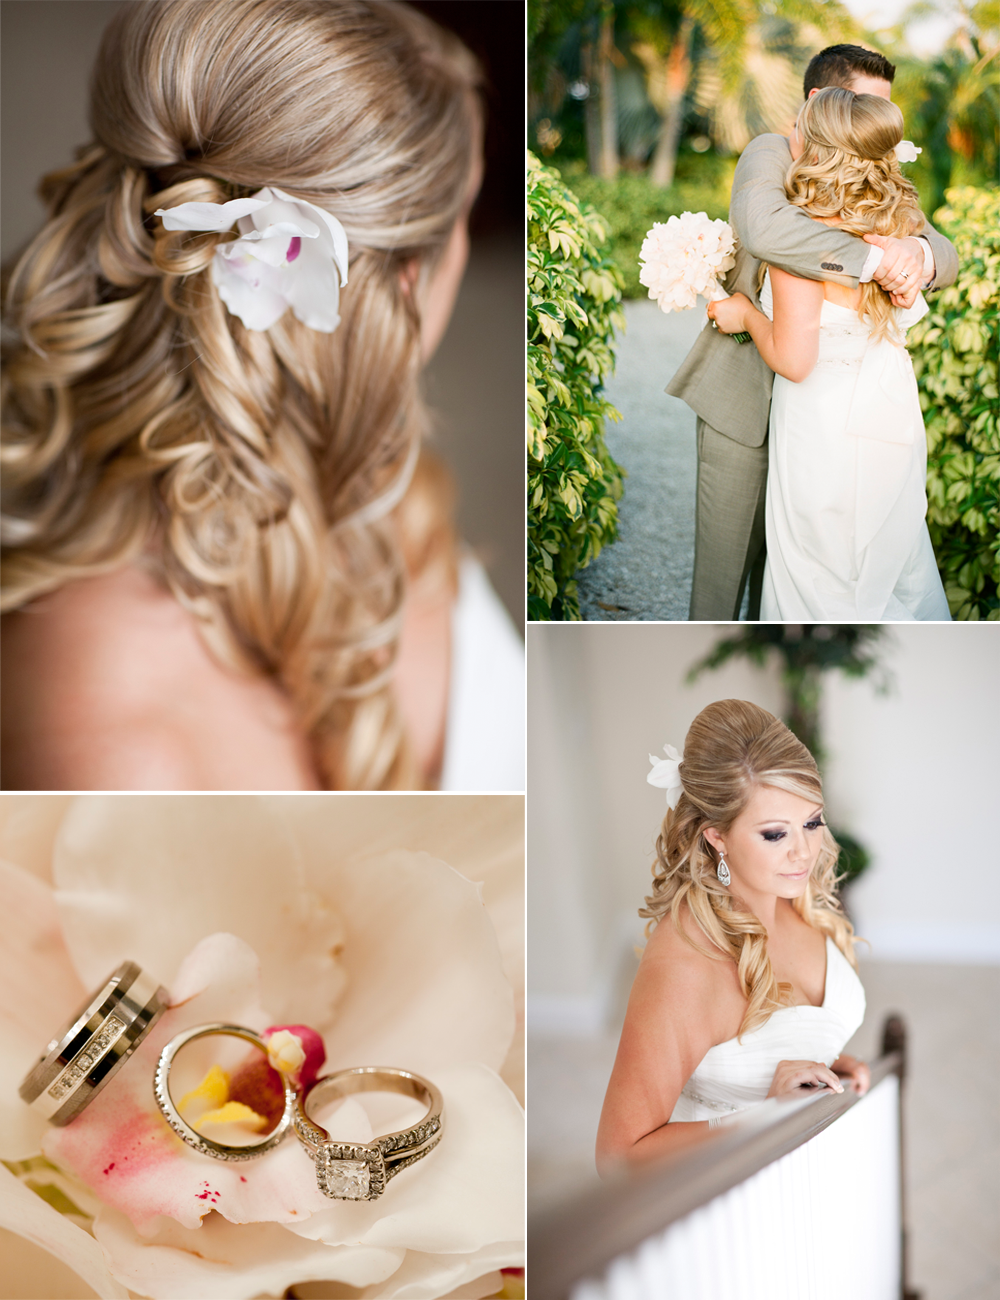 Outdoor wedding in Florida- bride wears half-up wedding hairstyle ...